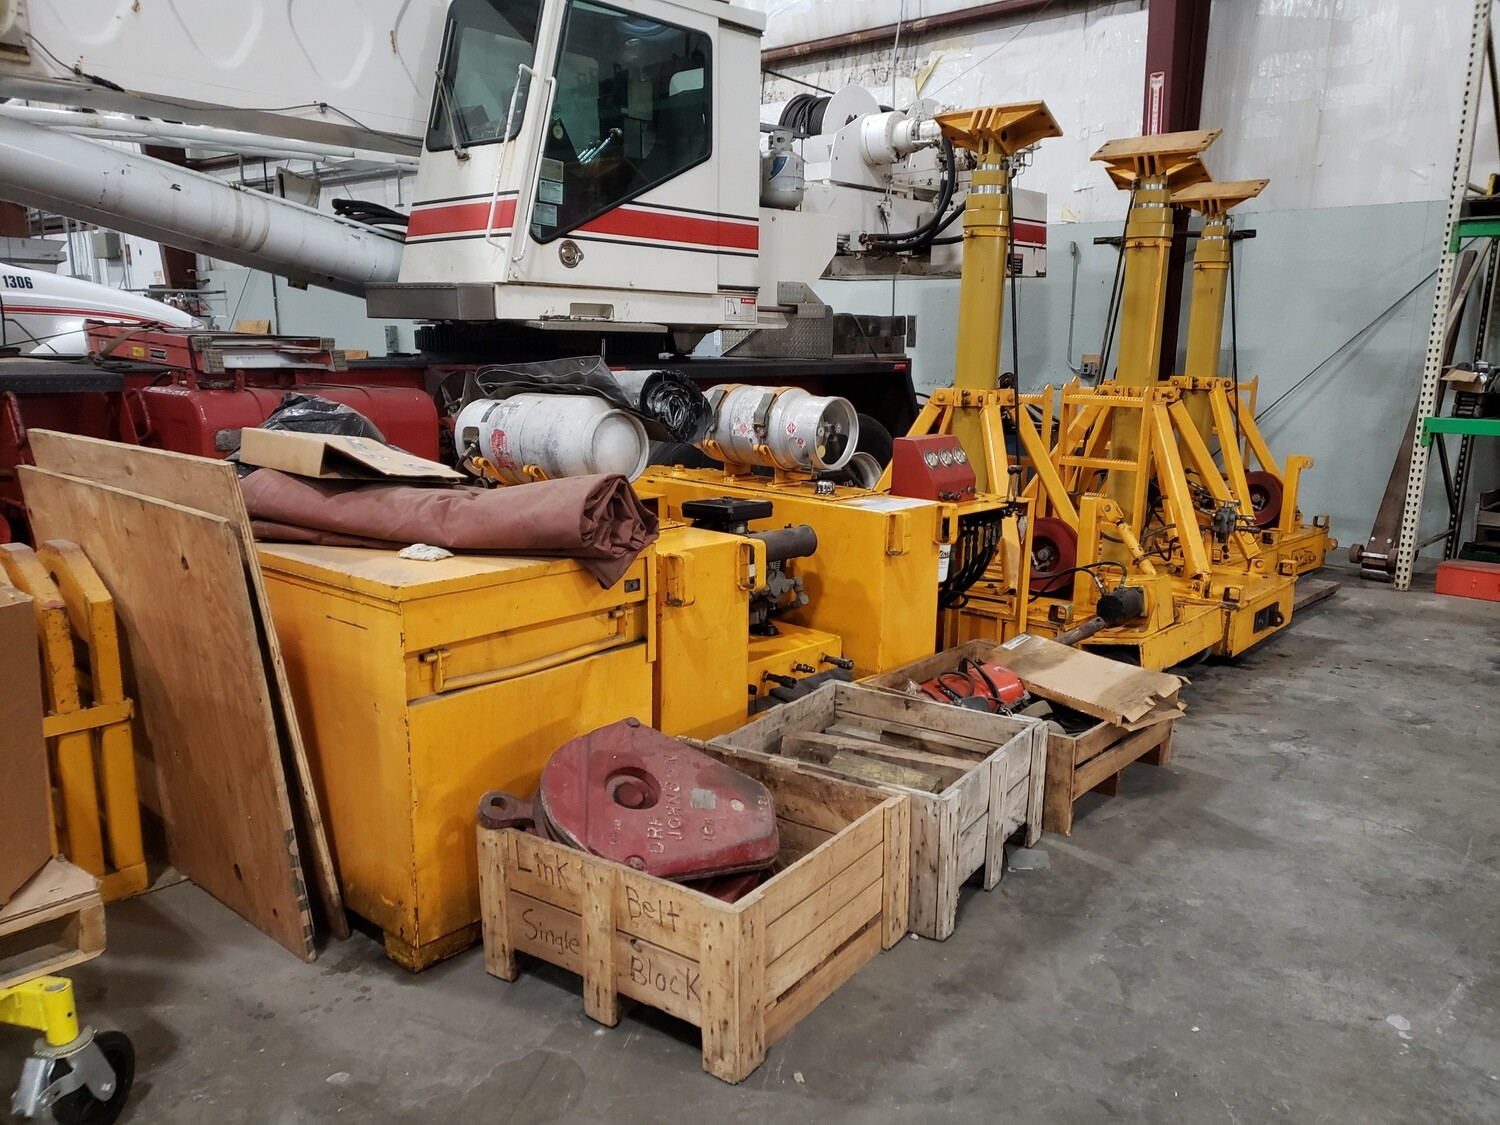 160 Ton Lift Systems 4-Point Gantry System For Sale